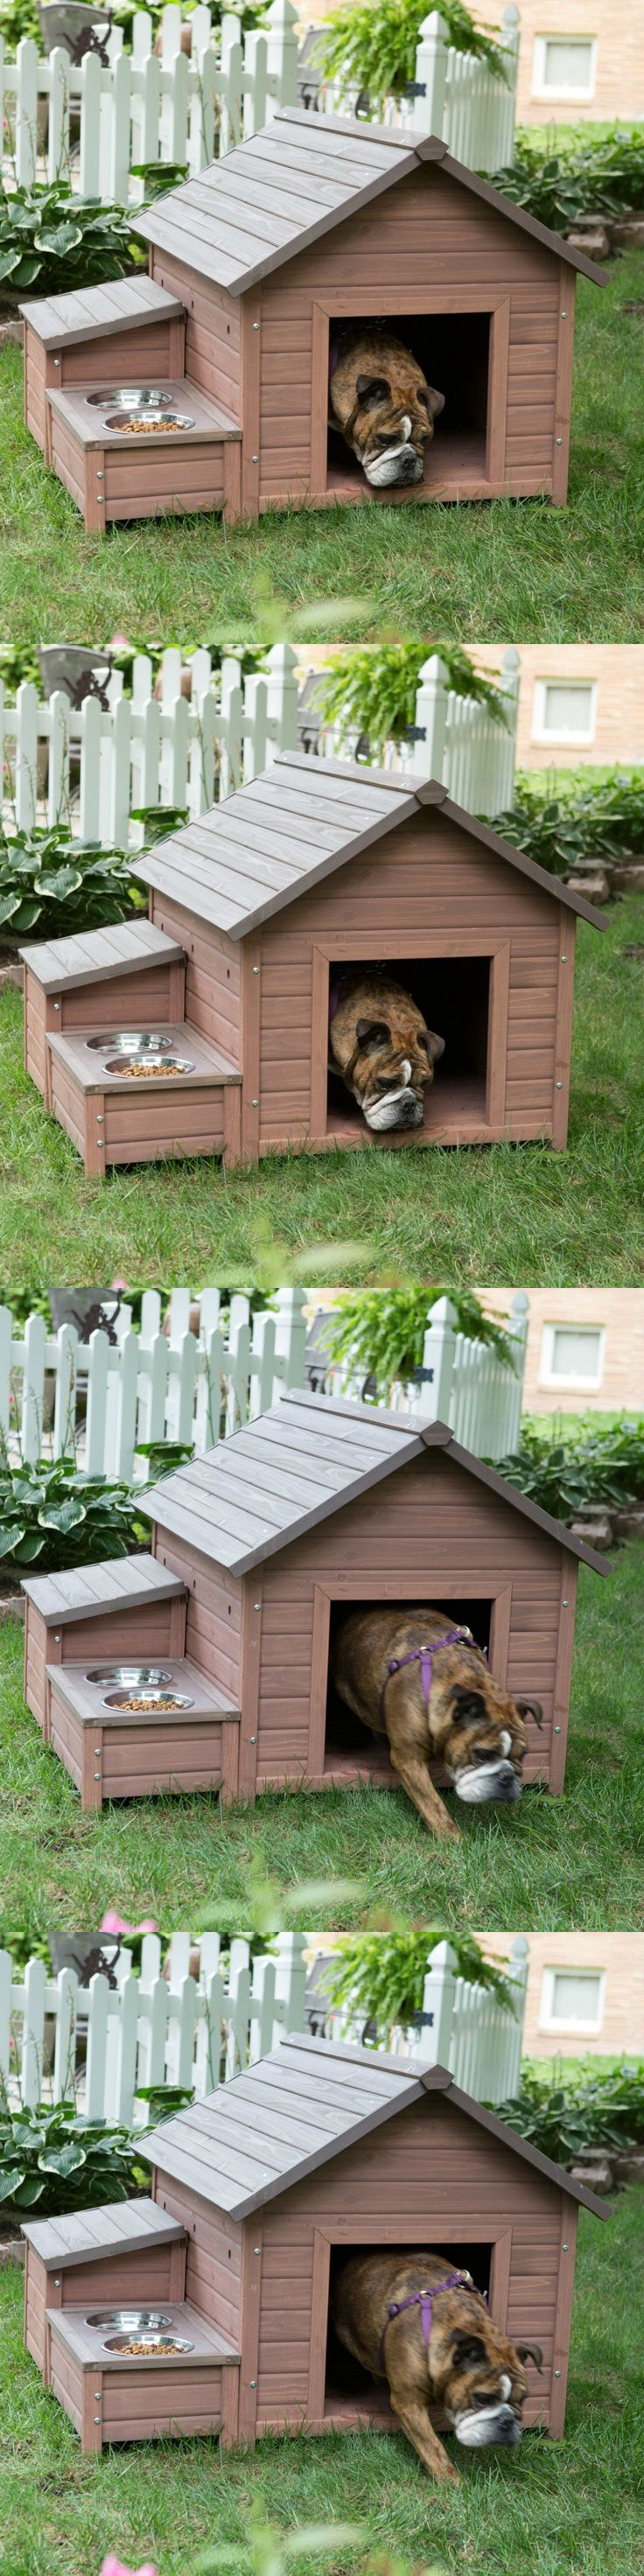 1000 ideas about indoor dog houses on pinterest dog cages dog spaces and dog rooms. Black Bedroom Furniture Sets. Home Design Ideas